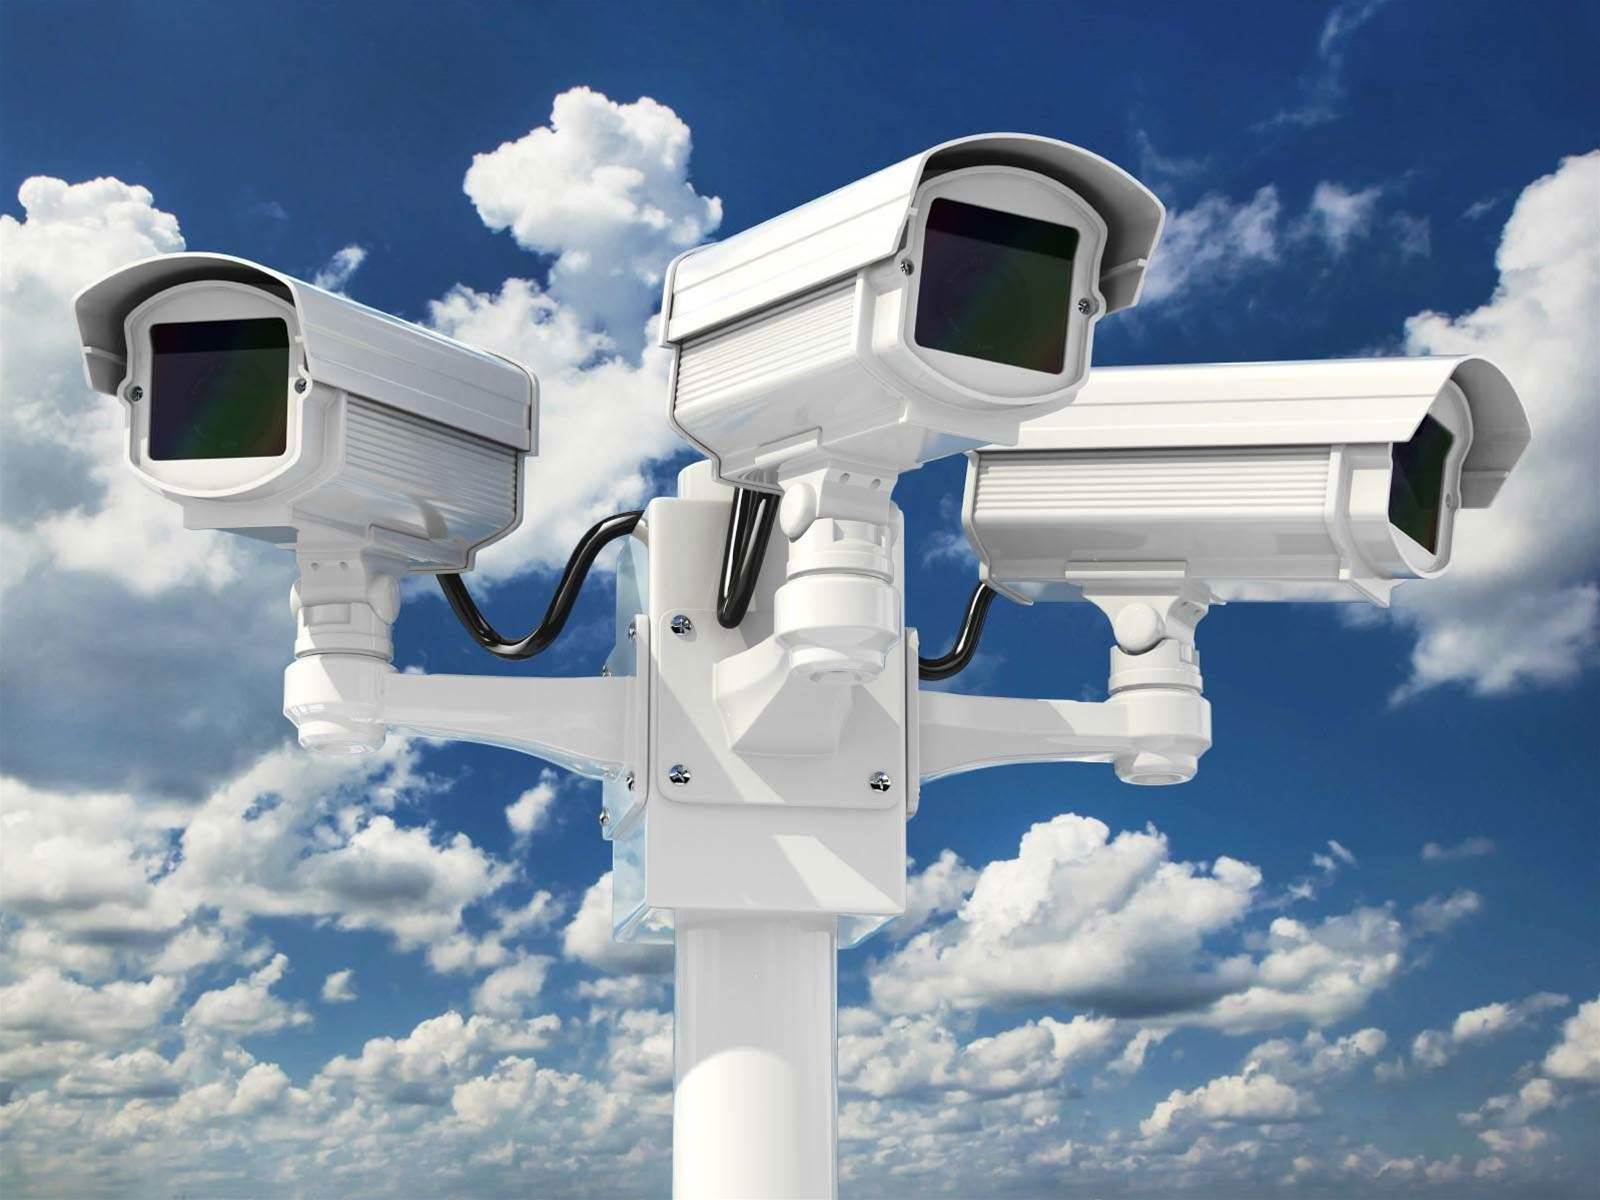 US to roll back domestic surveillance